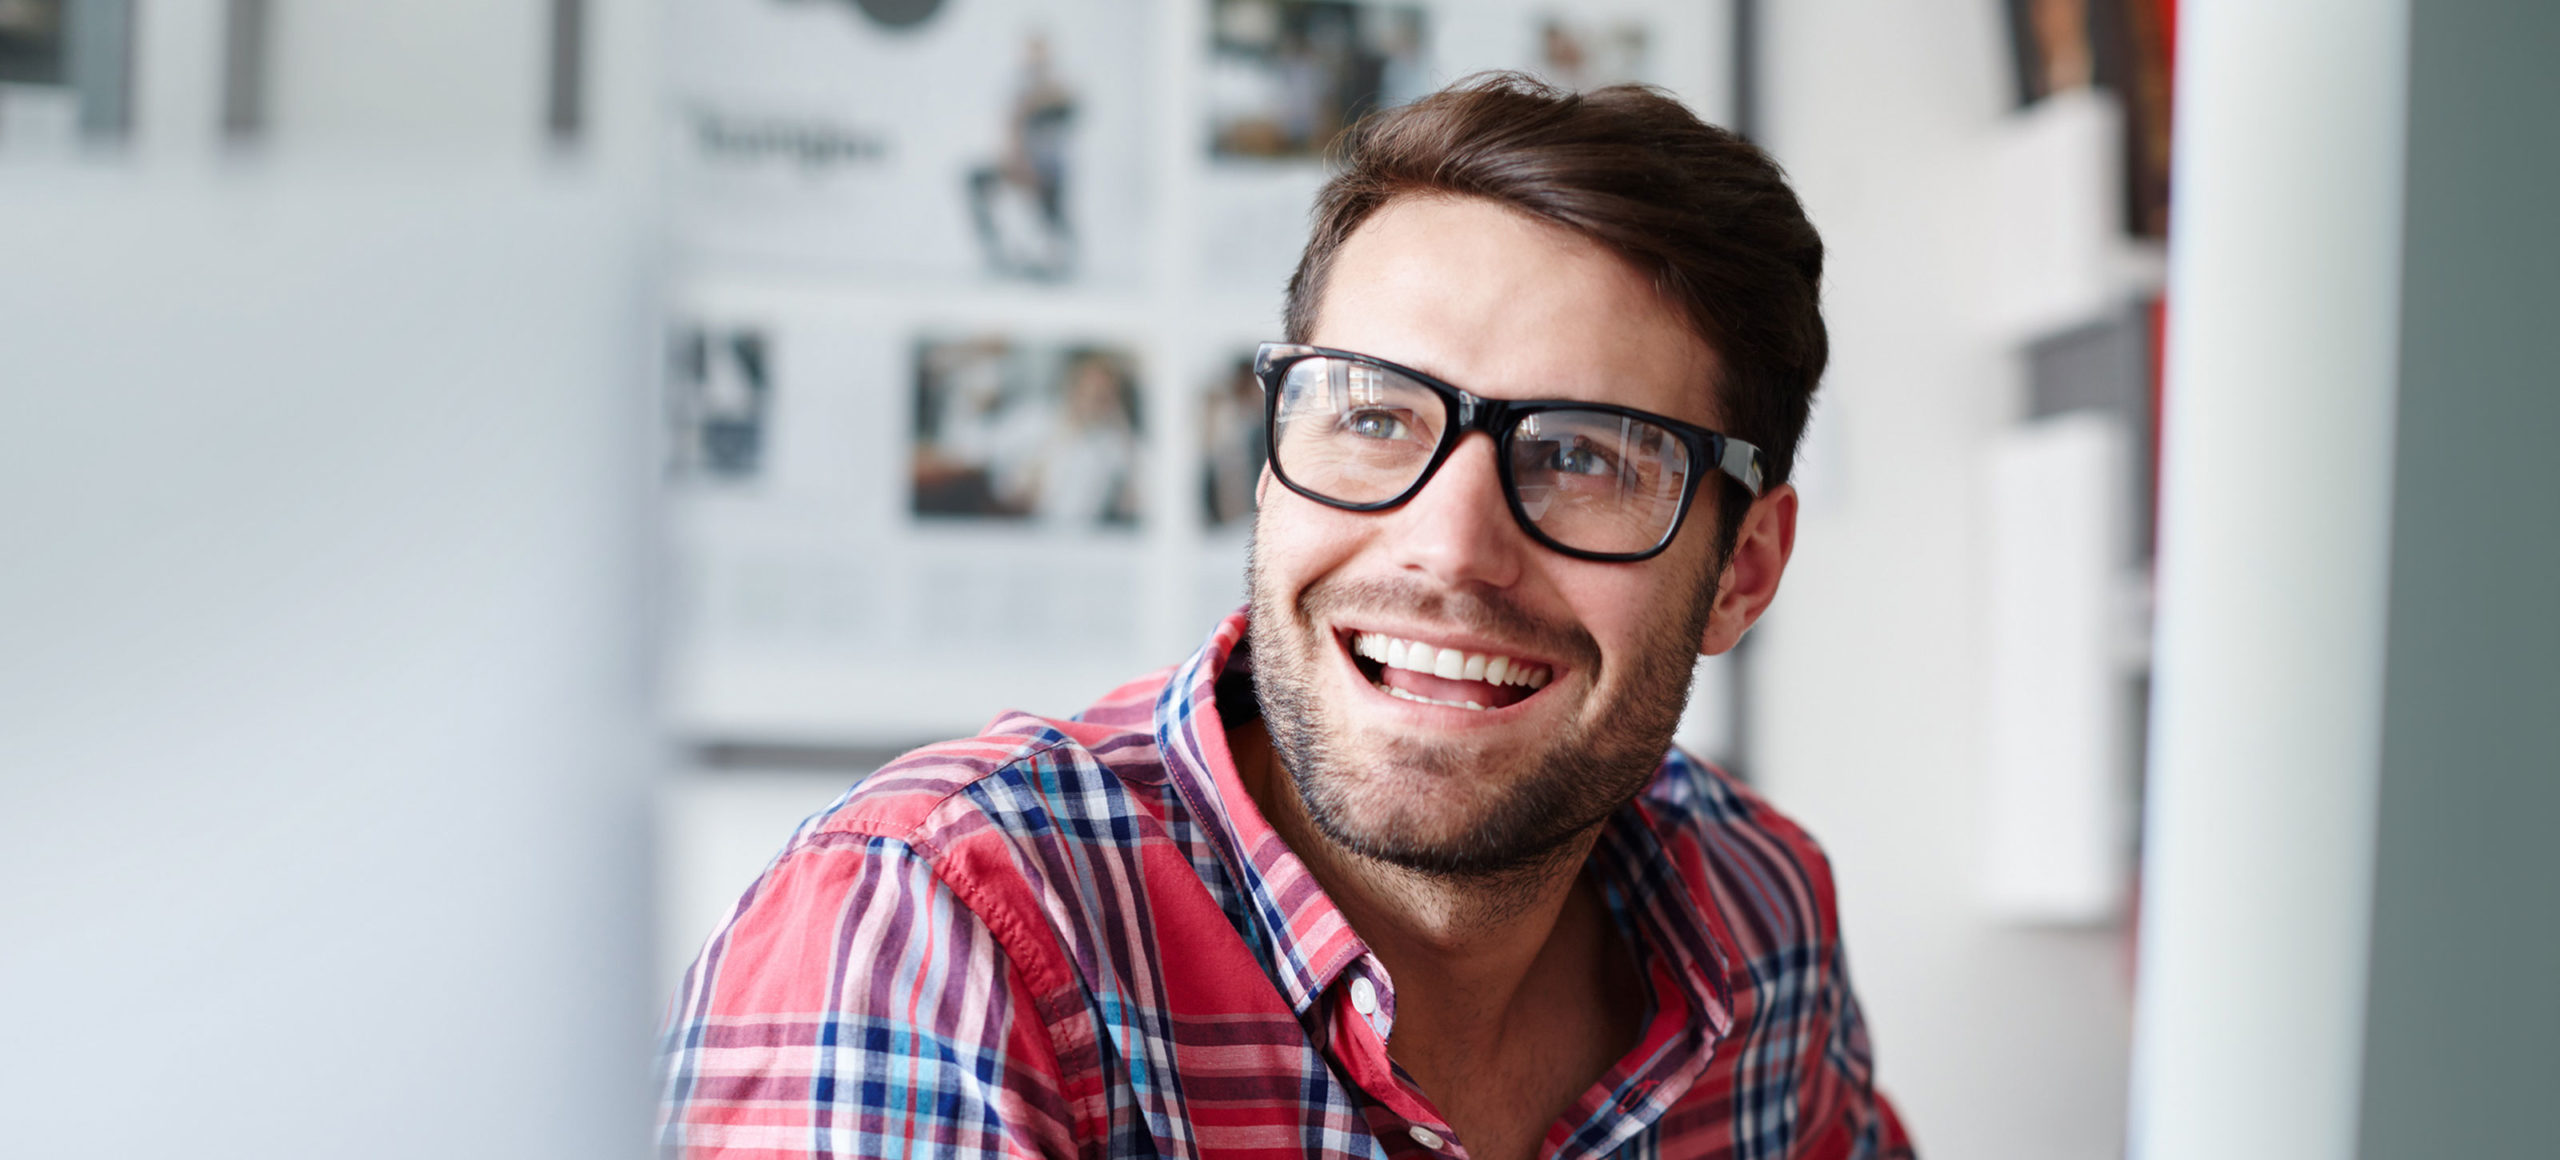 Happy grinning man in glasses and plaid shirt